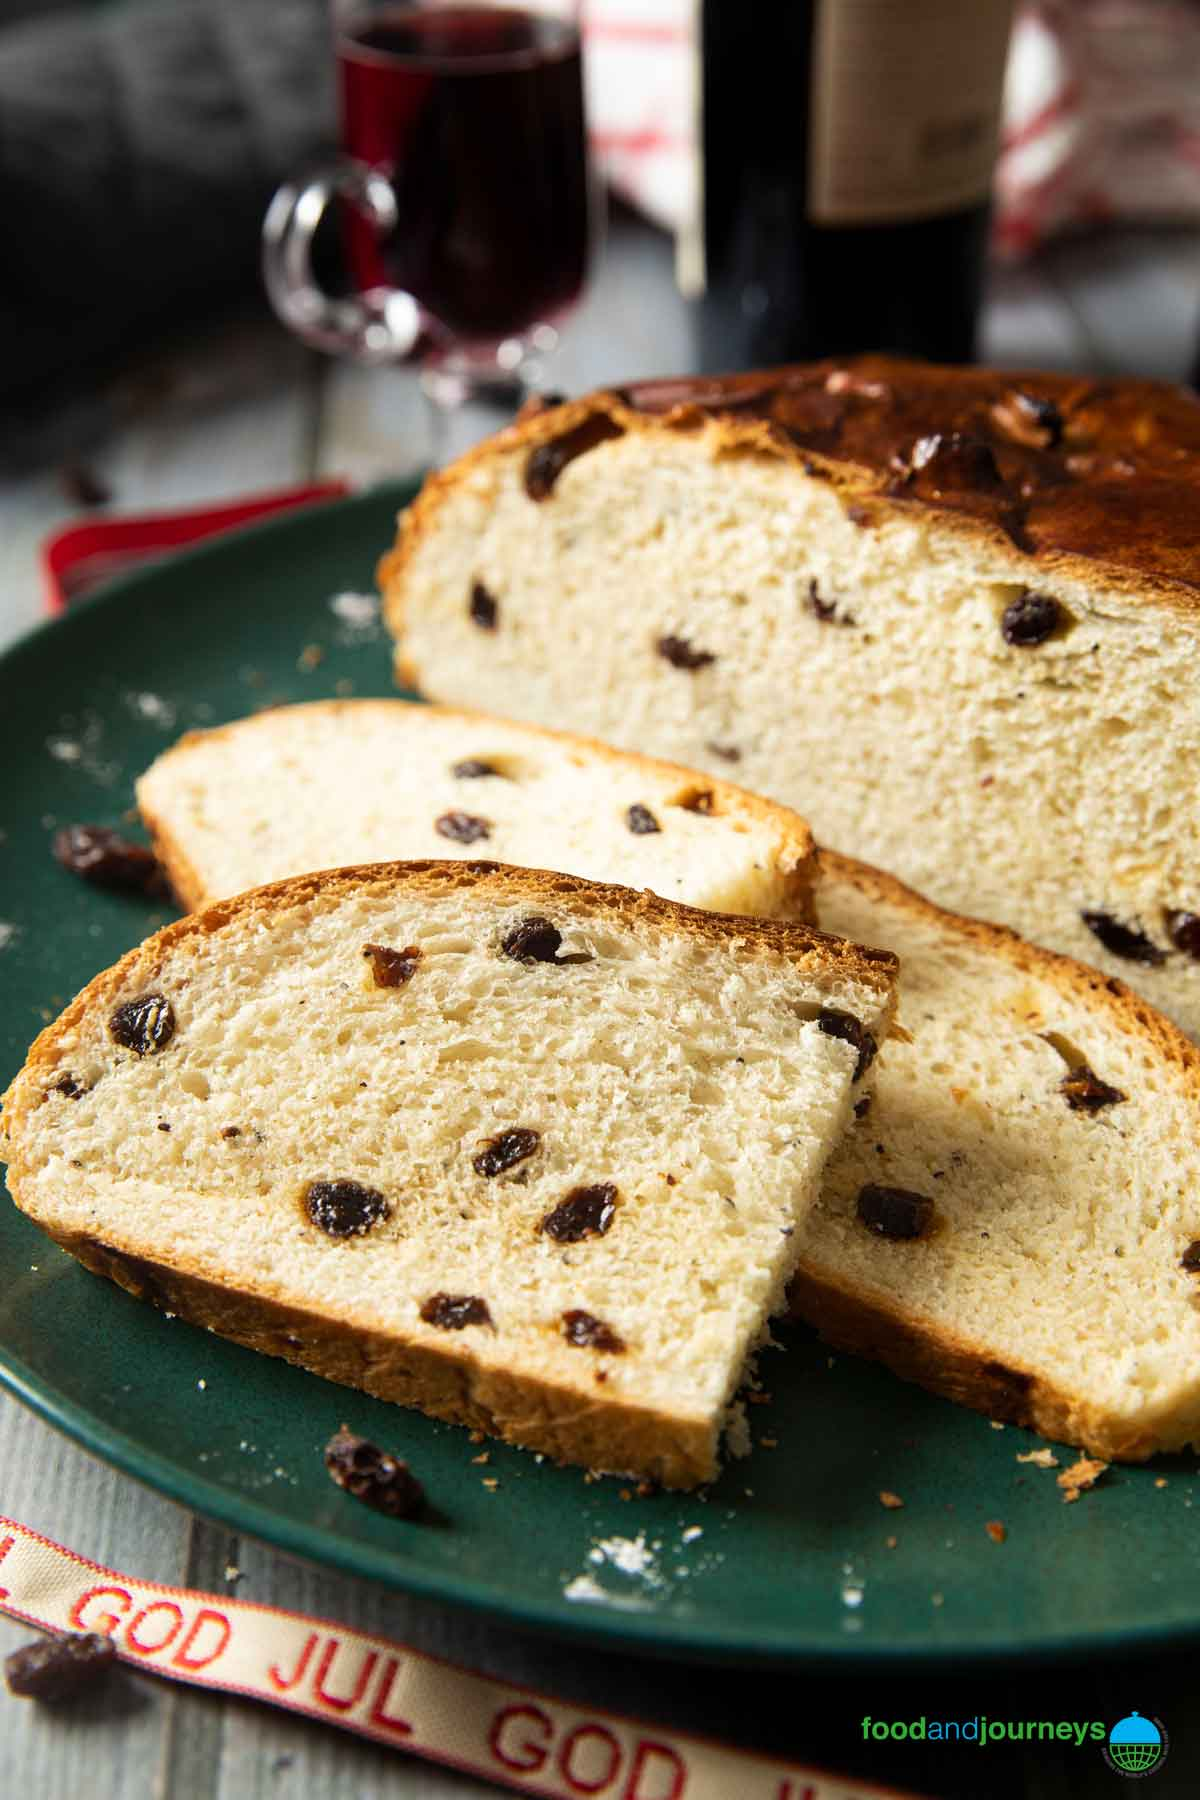 A classic Christmas bread from Norway, Julekake shown here as slices, highlighting the raisins inside and the soft texture of the bread.